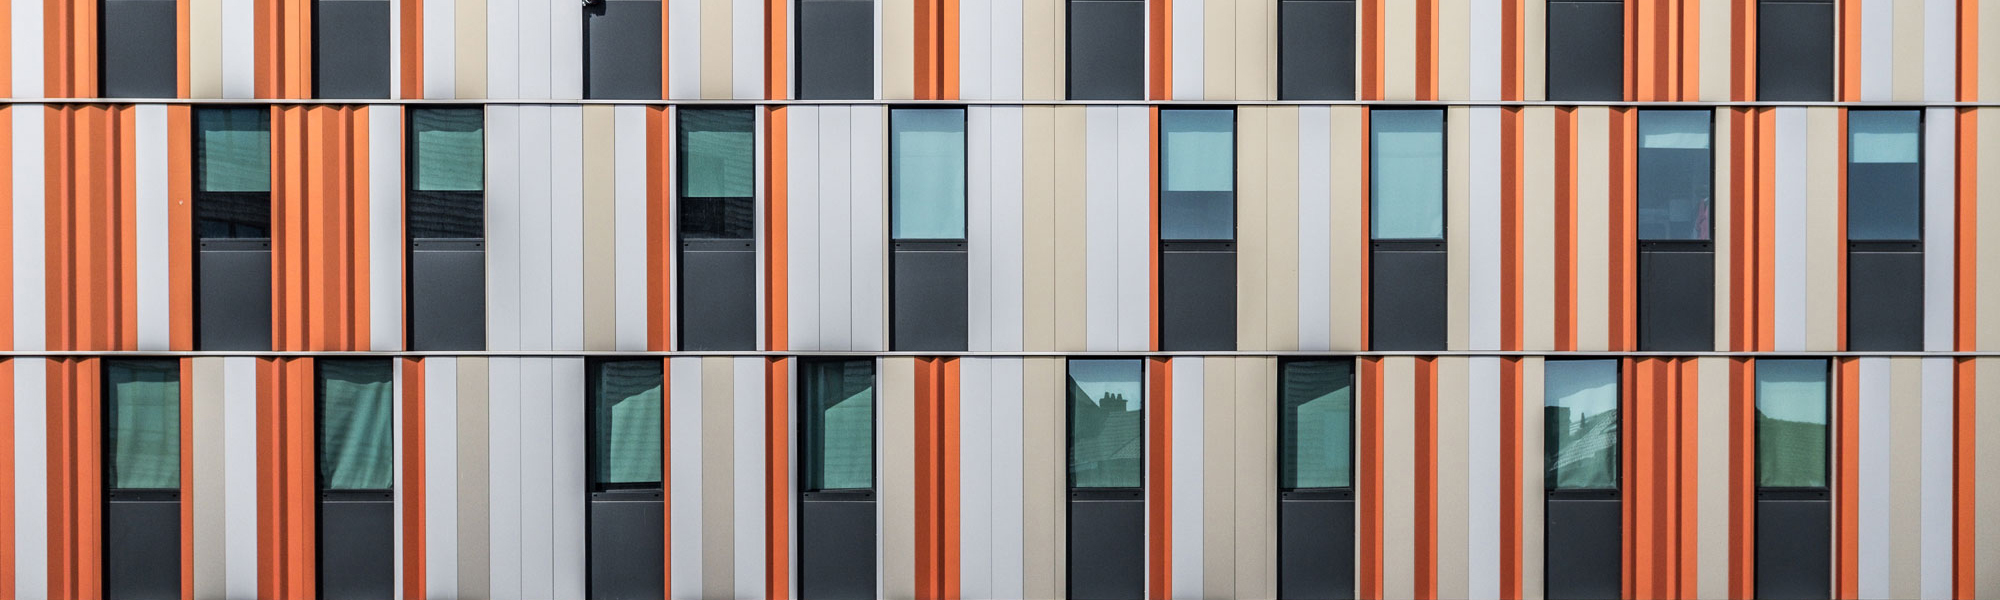 Orange window shuttters Photo by Bernard Hermant on Unsplash